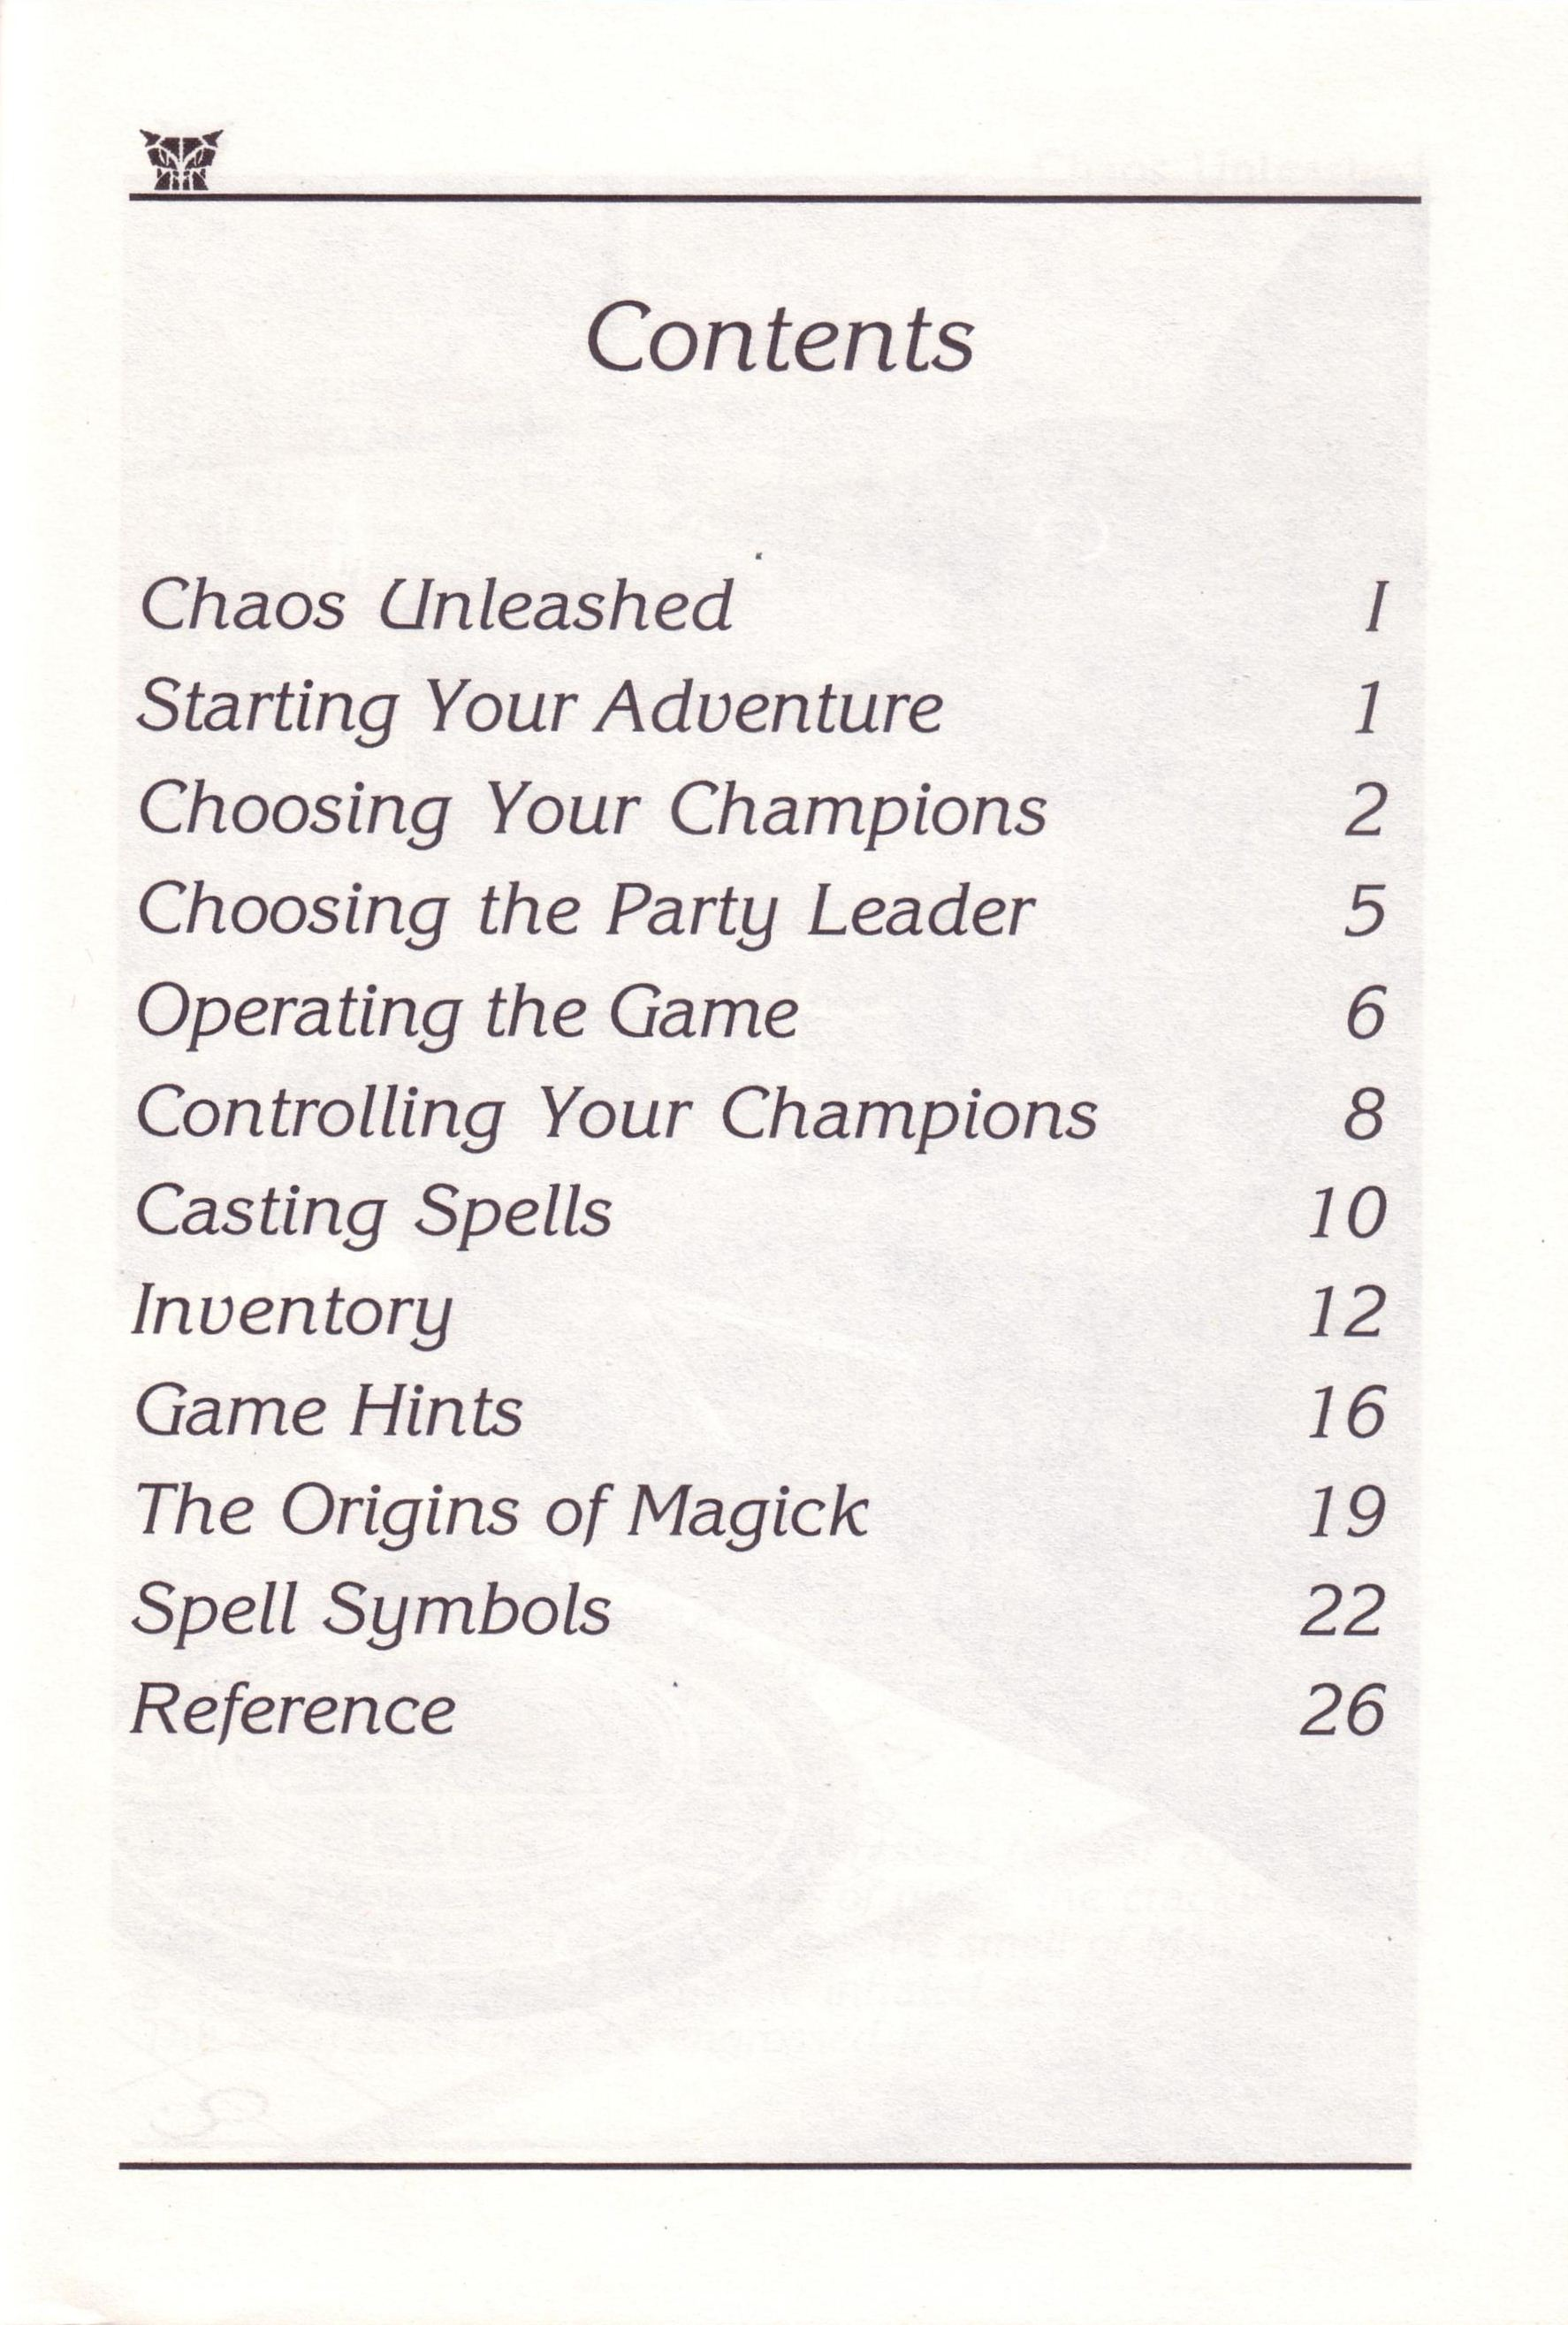 Dungeon Master for PC with FTL Sound Adapter (US Release) - Manual Page 05